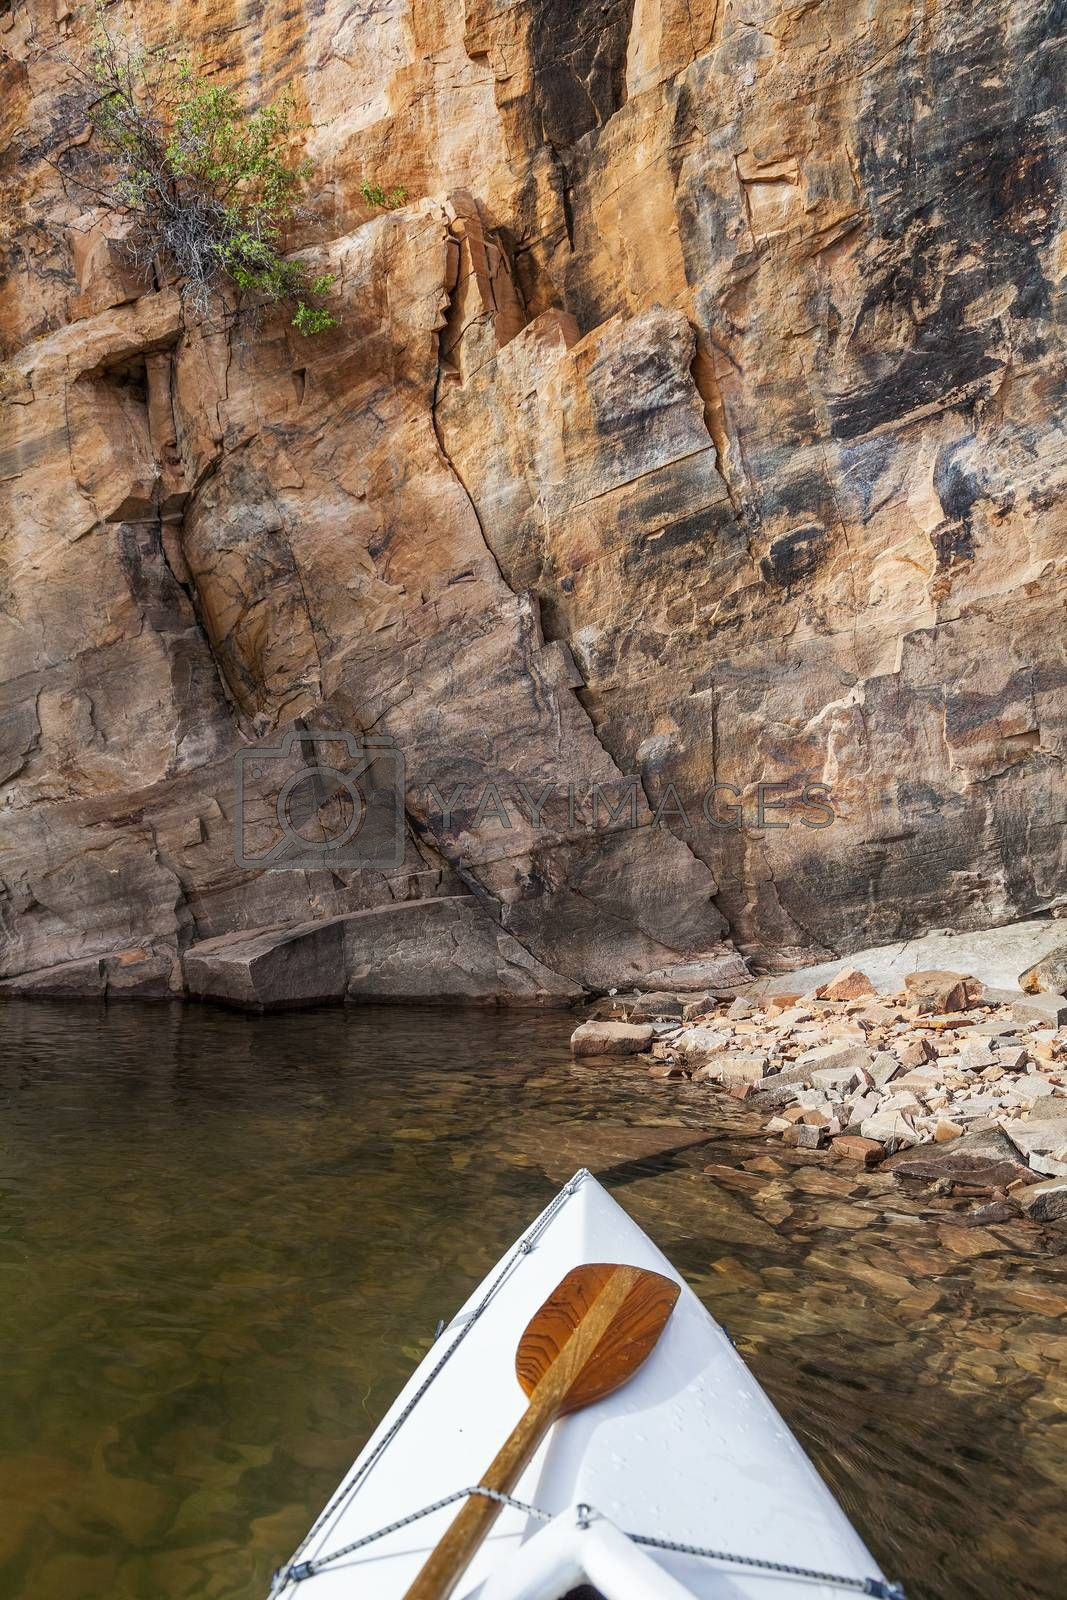 Royalty free image of canoe on a Colorado lake by PixelsAway